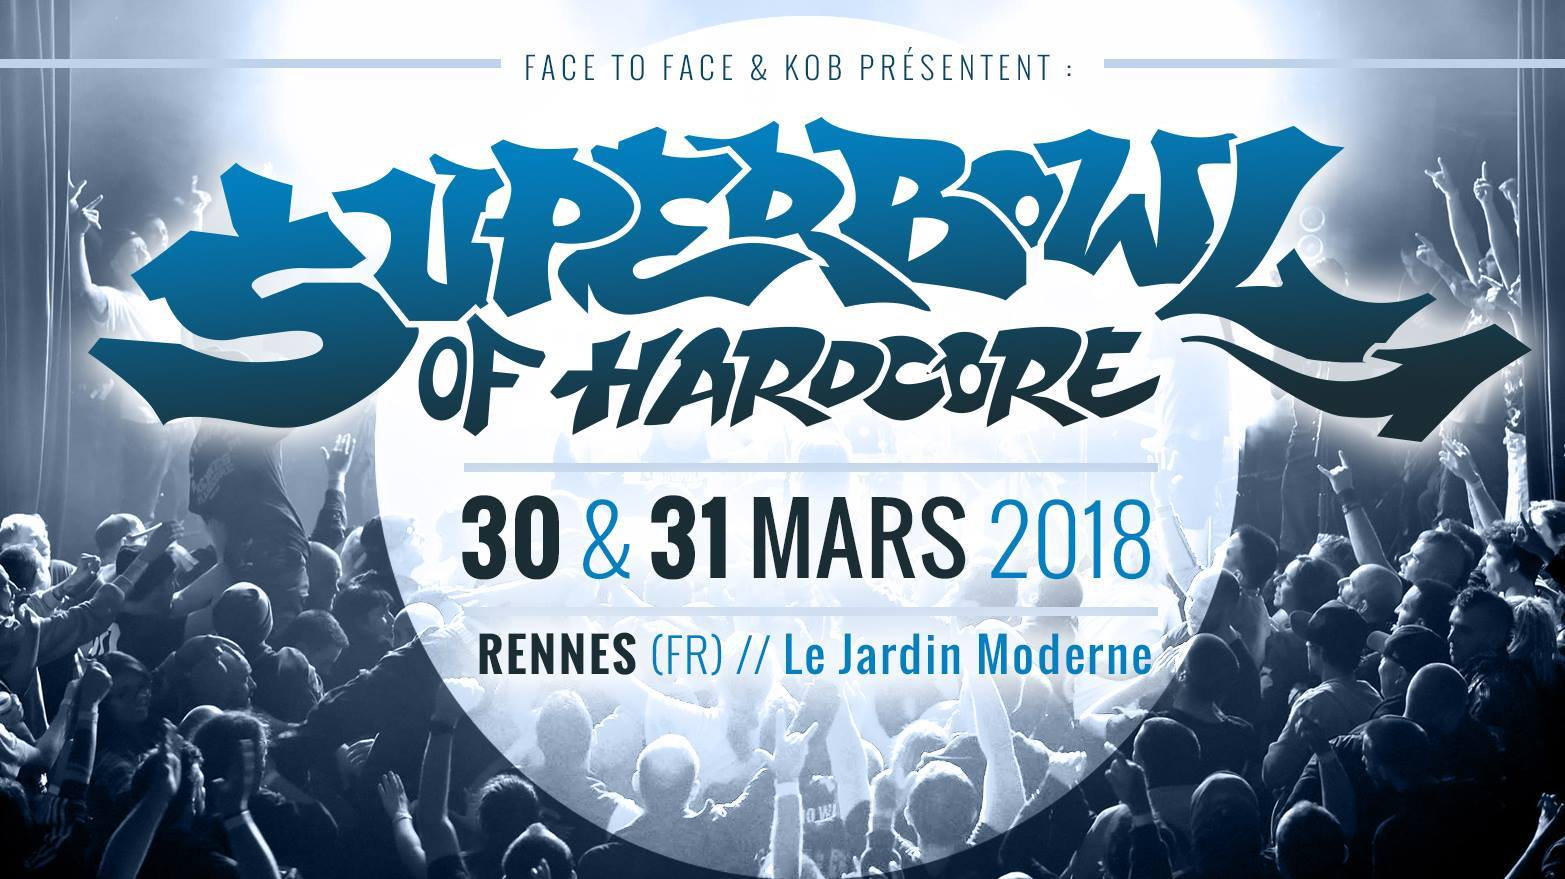 Superbowl of Hardcore Festival